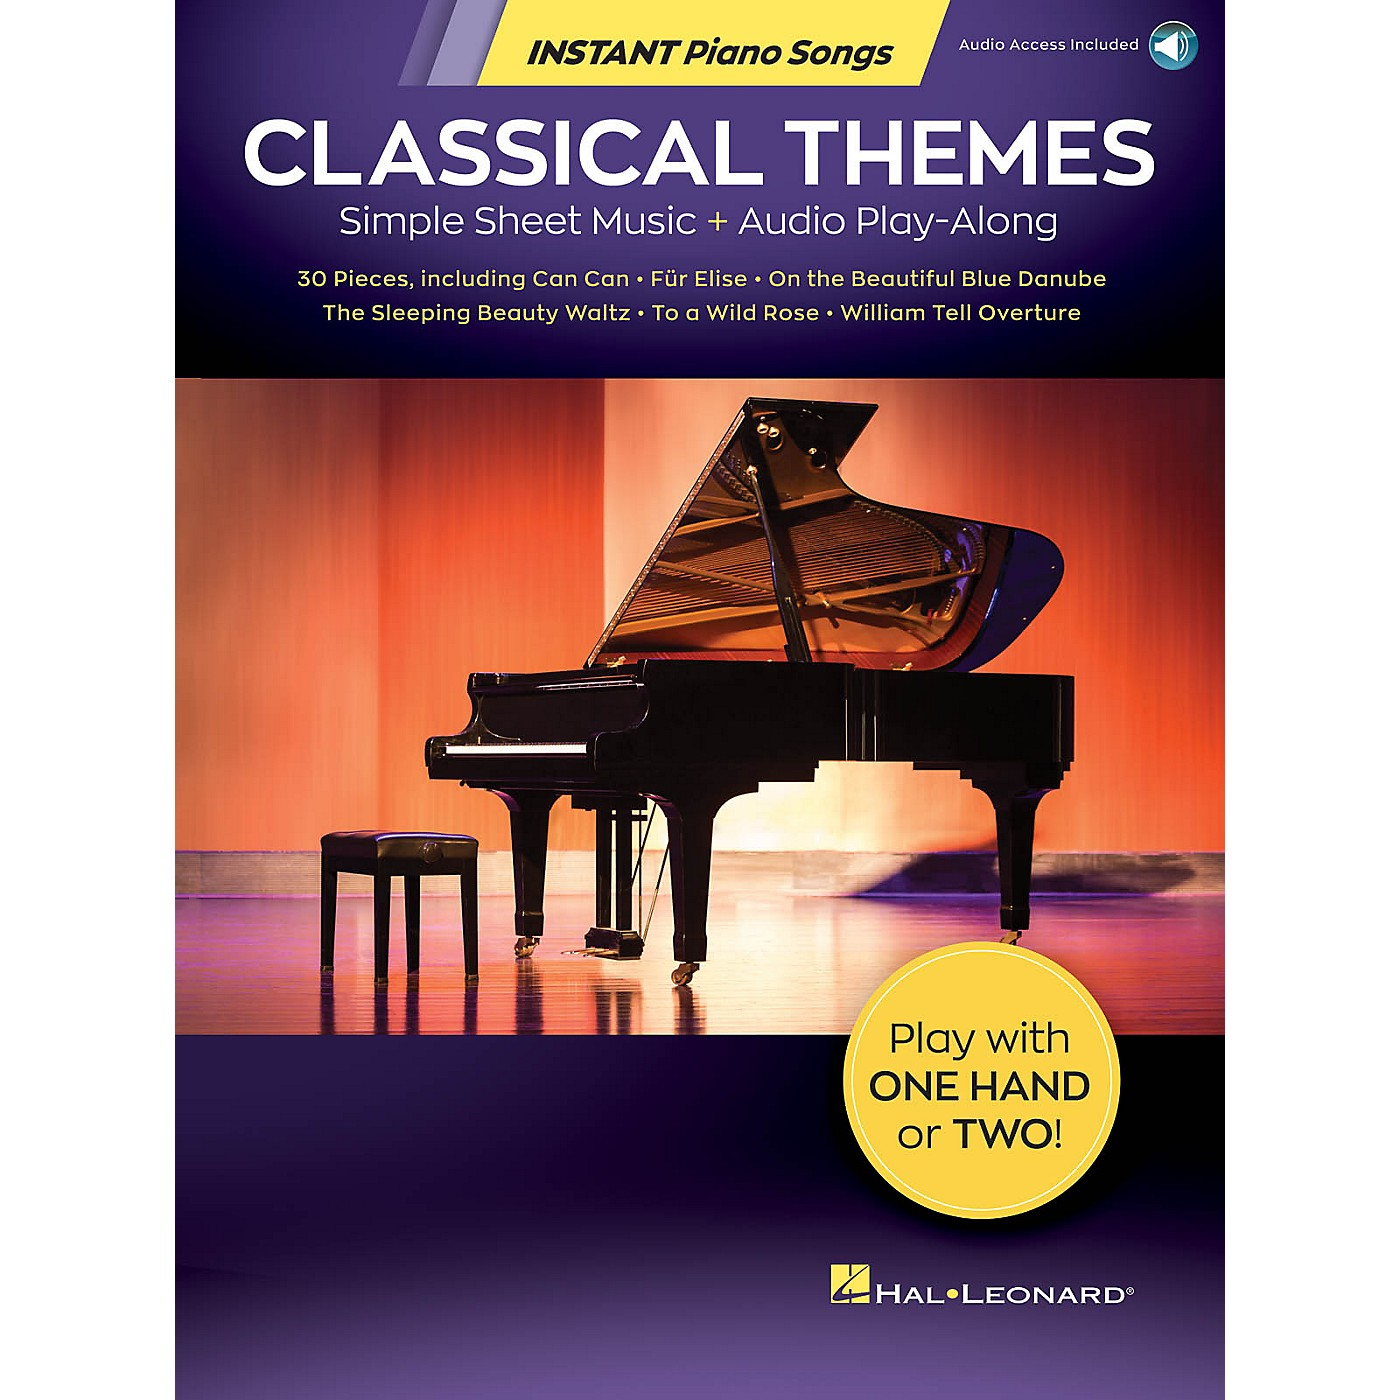 Hal Leonard Classical Themes - Instant Piano Songs - Simple Sheet Music Audio Play-Along Book/Audio Online thumbnail